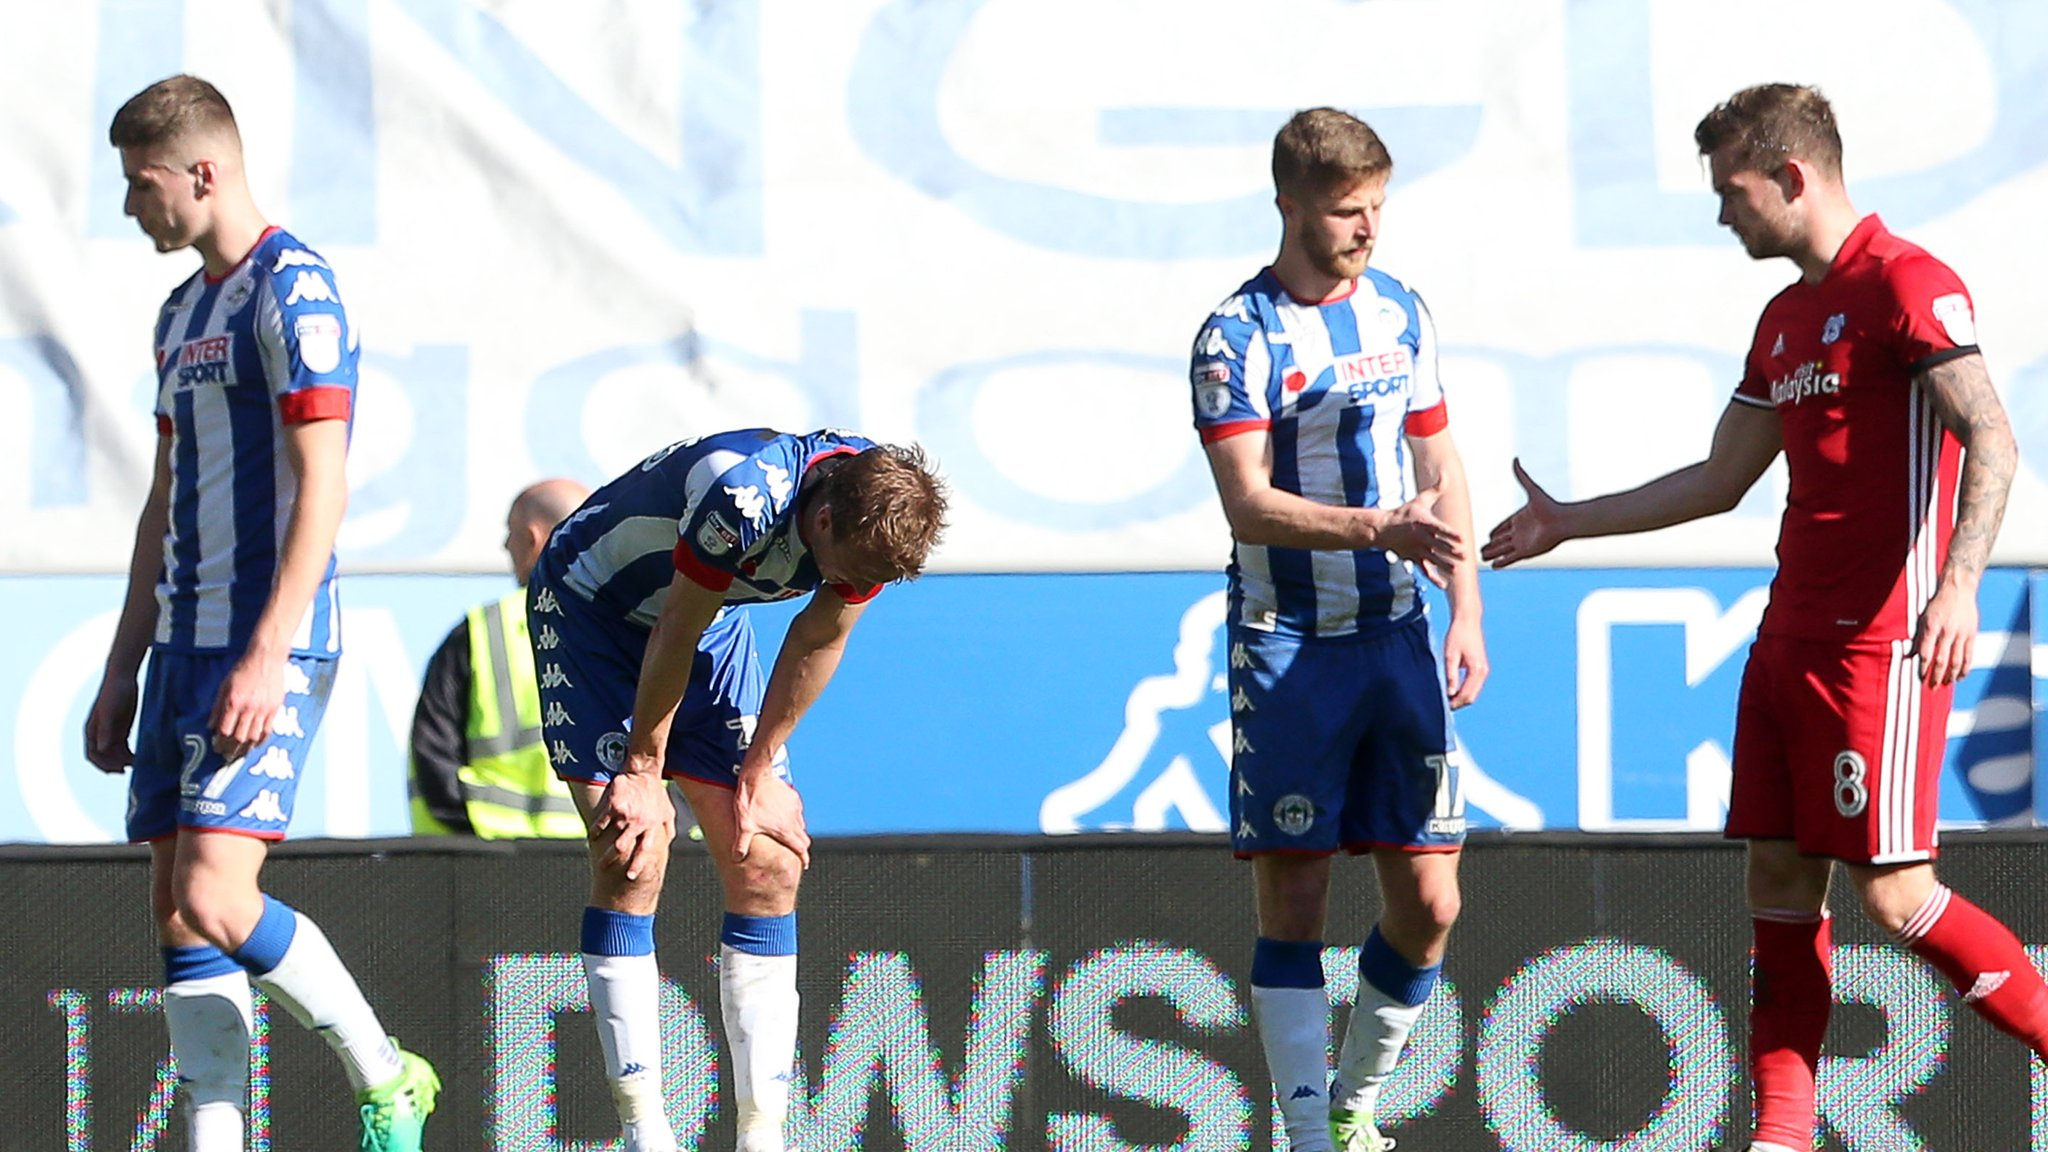 <![CDATA[Wigan relegated to League One after loss]]>